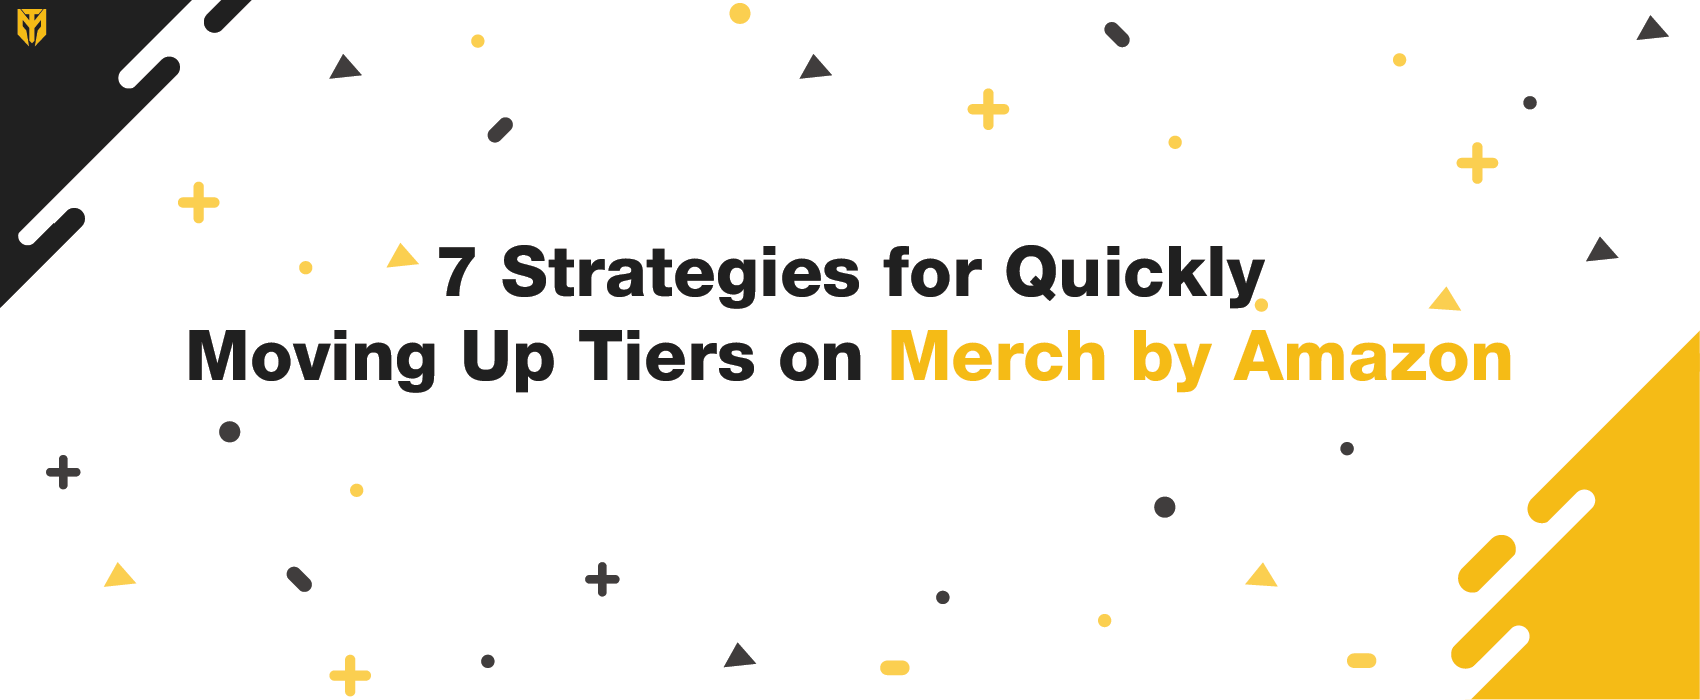 Merch by Amazon Tier Up Strategies